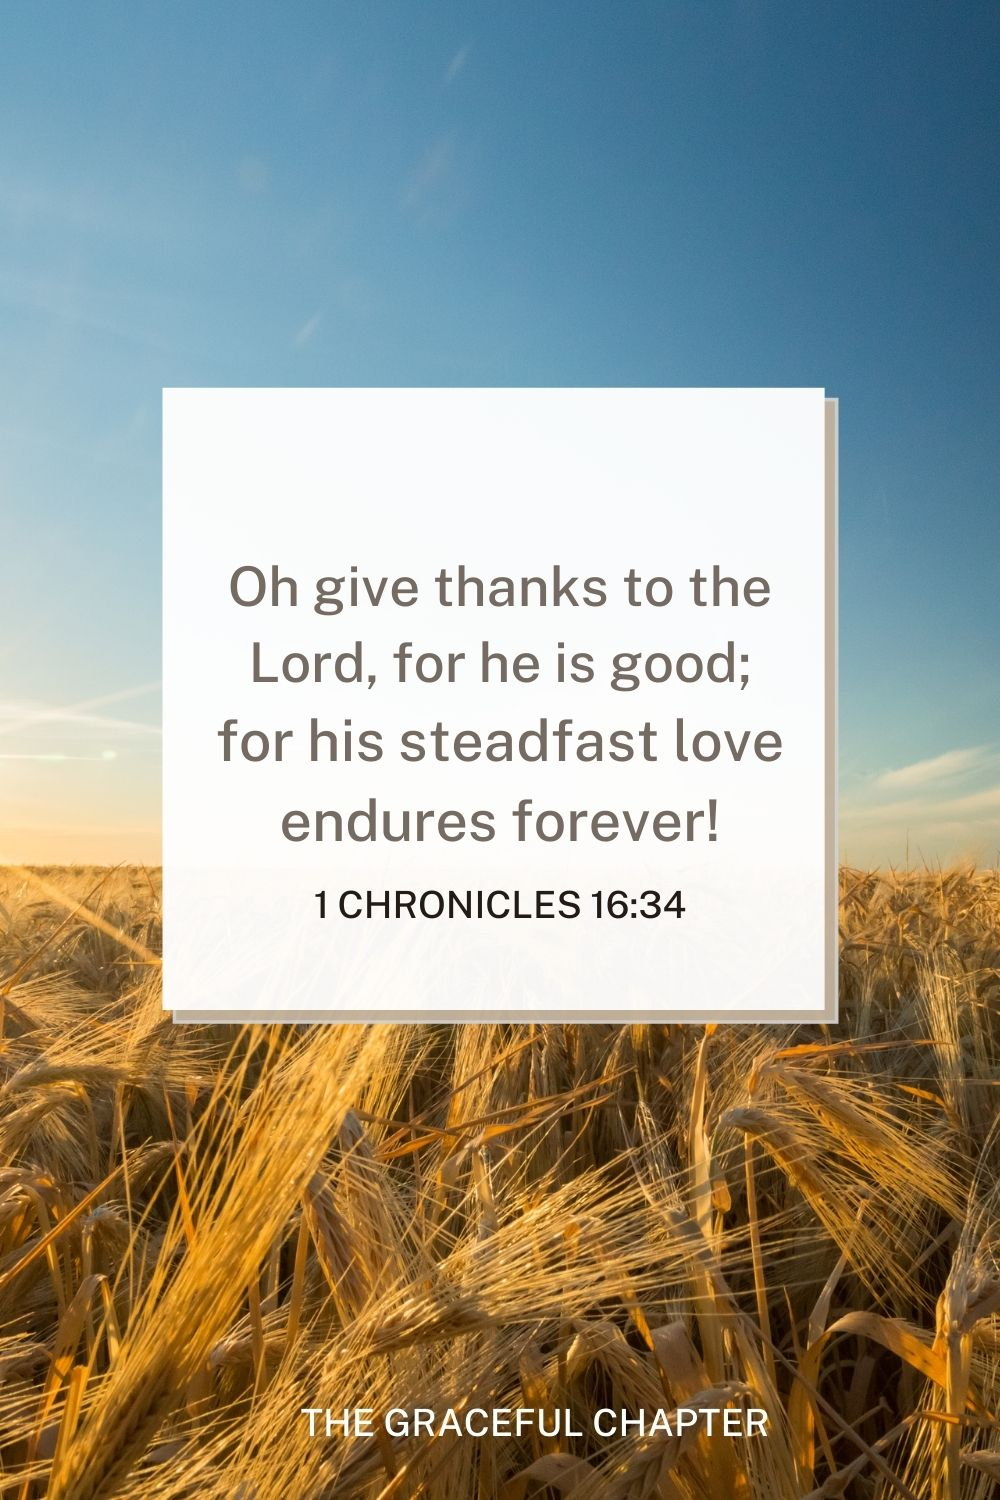 Oh give thanks to the Lord, for he is good; for his steadfast love endures forever! 1 Chronicles 16:34